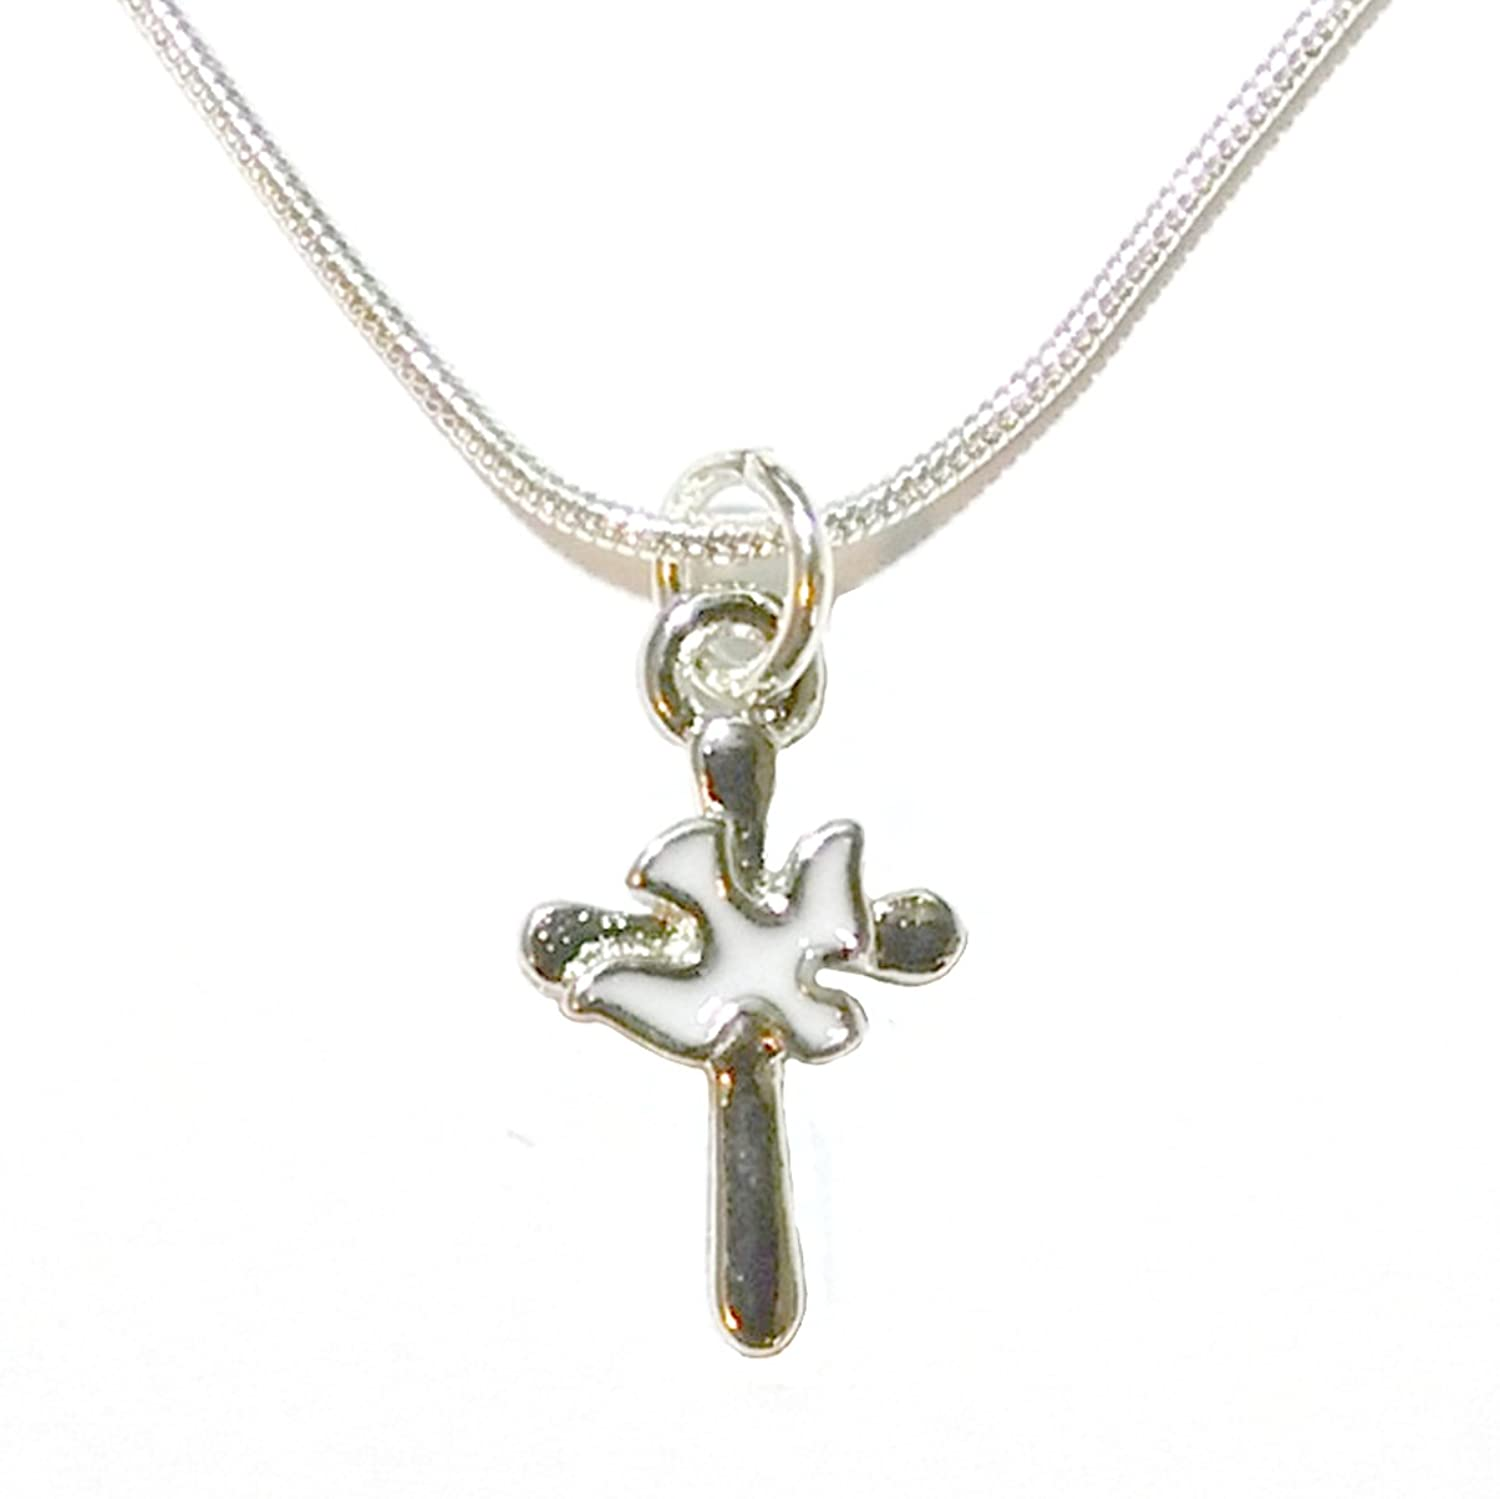 Charmed By Dragons Inspirational Cross Necklace with Dove Spirit Silver Chain In Gift Box